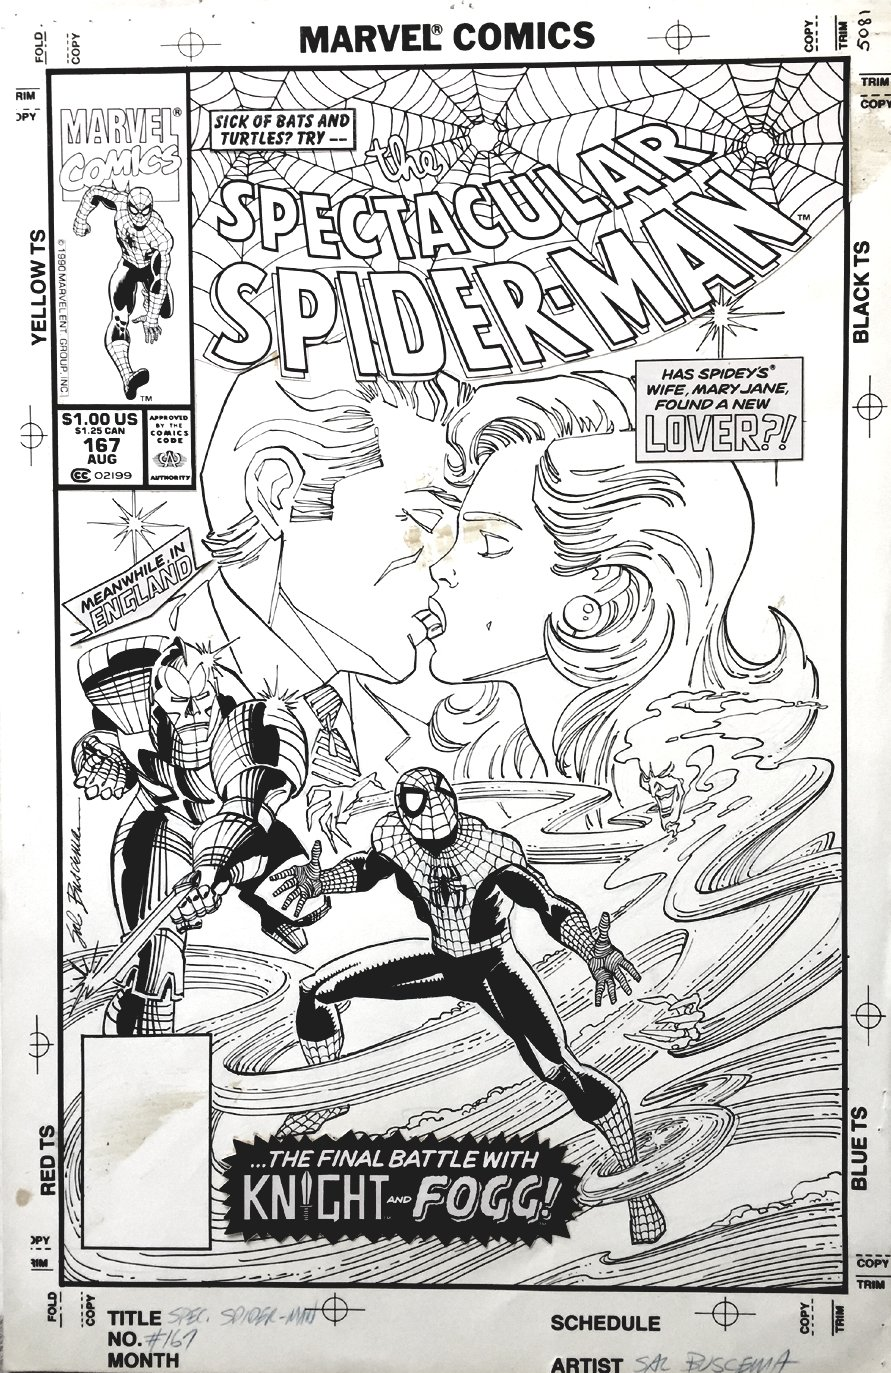 Spectacular Spider-Man #167 Cover (1990)